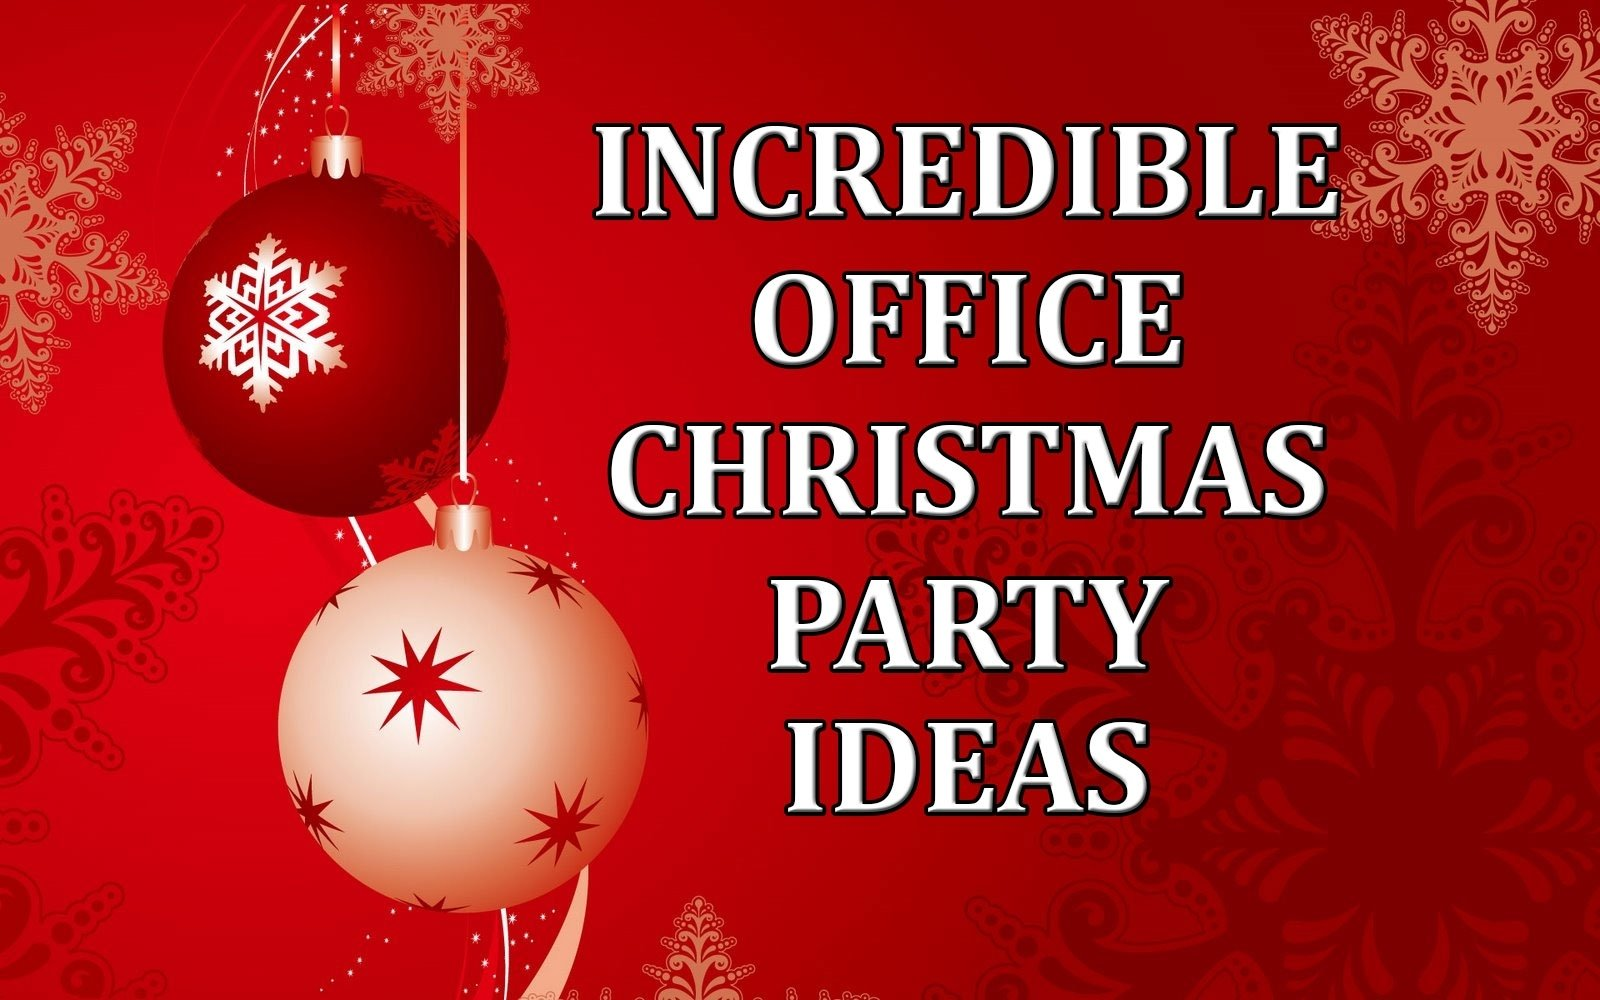 10 Ideal Ideas For Office Christmas Parties incredible office christmas party ideas comedy ventriloquist 1 2020